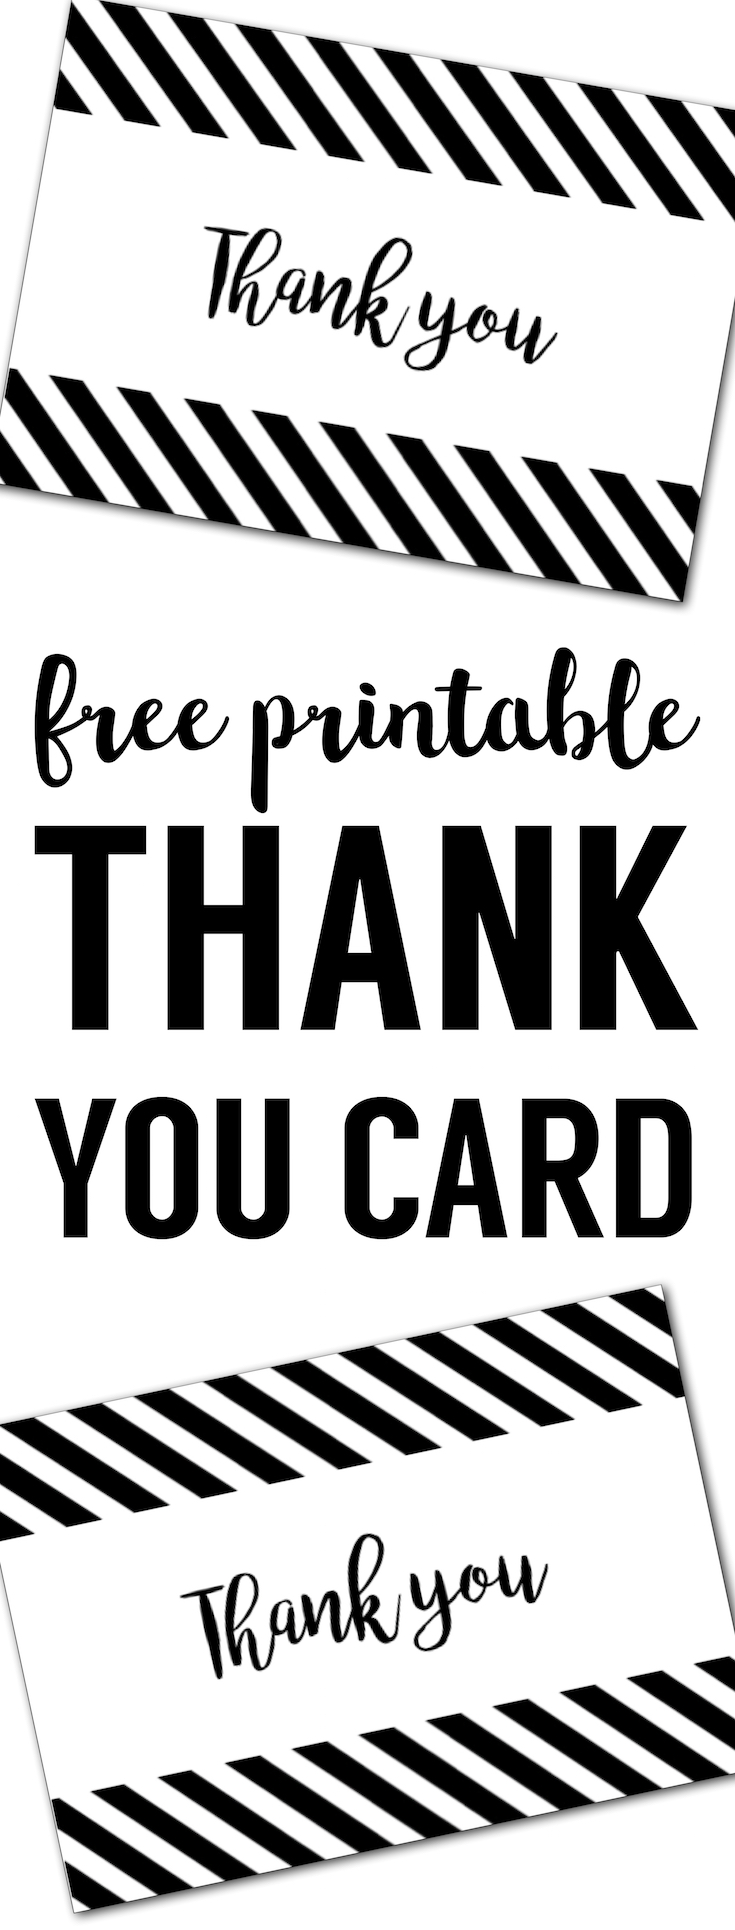 graphic relating to Printable Thank You Cards Black and White known as Totally free Thank On your own Playing cards Print Cost-free Printable Black and White